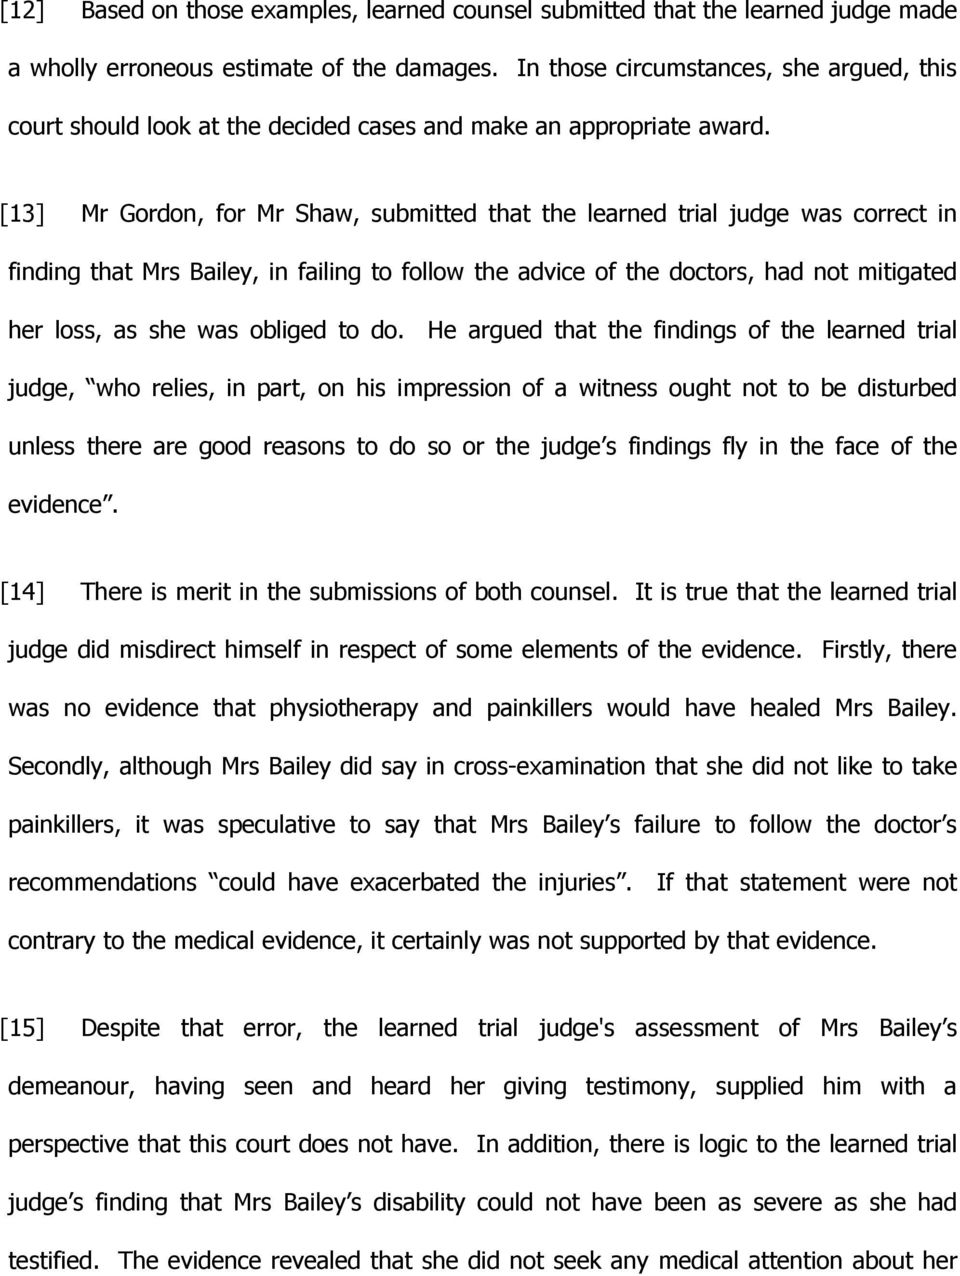 [13] Mr Gordon, for Mr Shaw, submitted that the learned trial judge was correct in finding that Mrs Bailey, in failing to follow the advice of the doctors, had not mitigated her loss, as she was